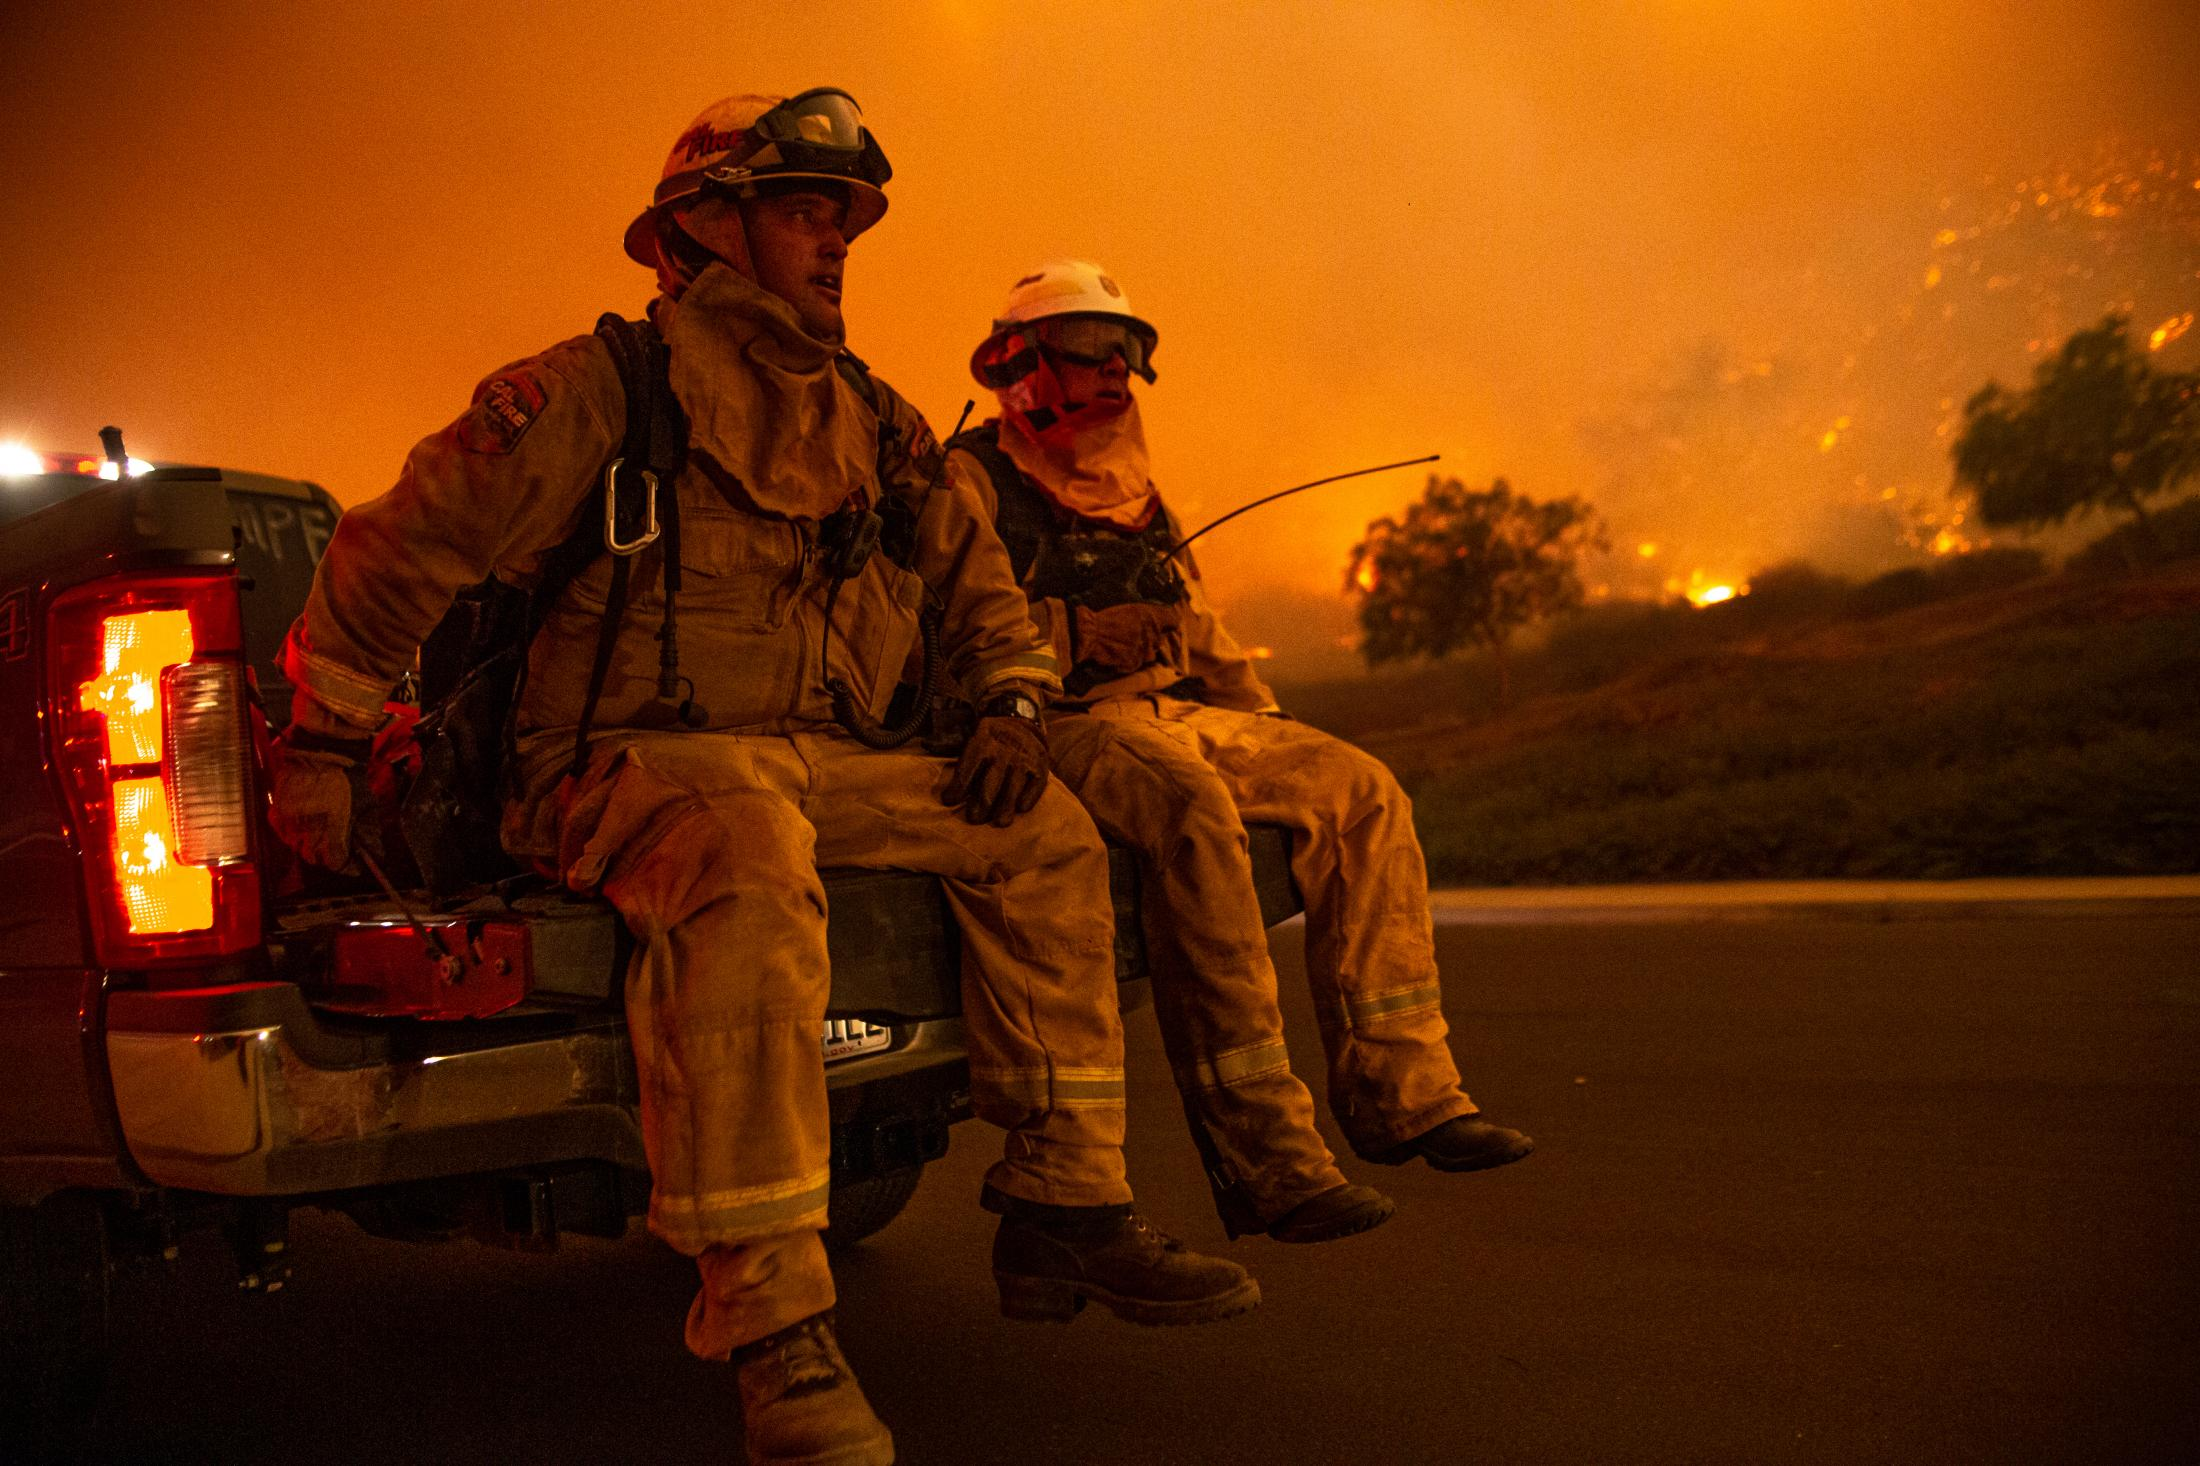 This wildfire burned; 96,949 acres and destroyed 1,643 structures. Three people reported to have died in the blaze, and over a quarter-million evacuated. Two Fire Chiefs sit on the bed of a truck after hours of battling a violent wildfire.